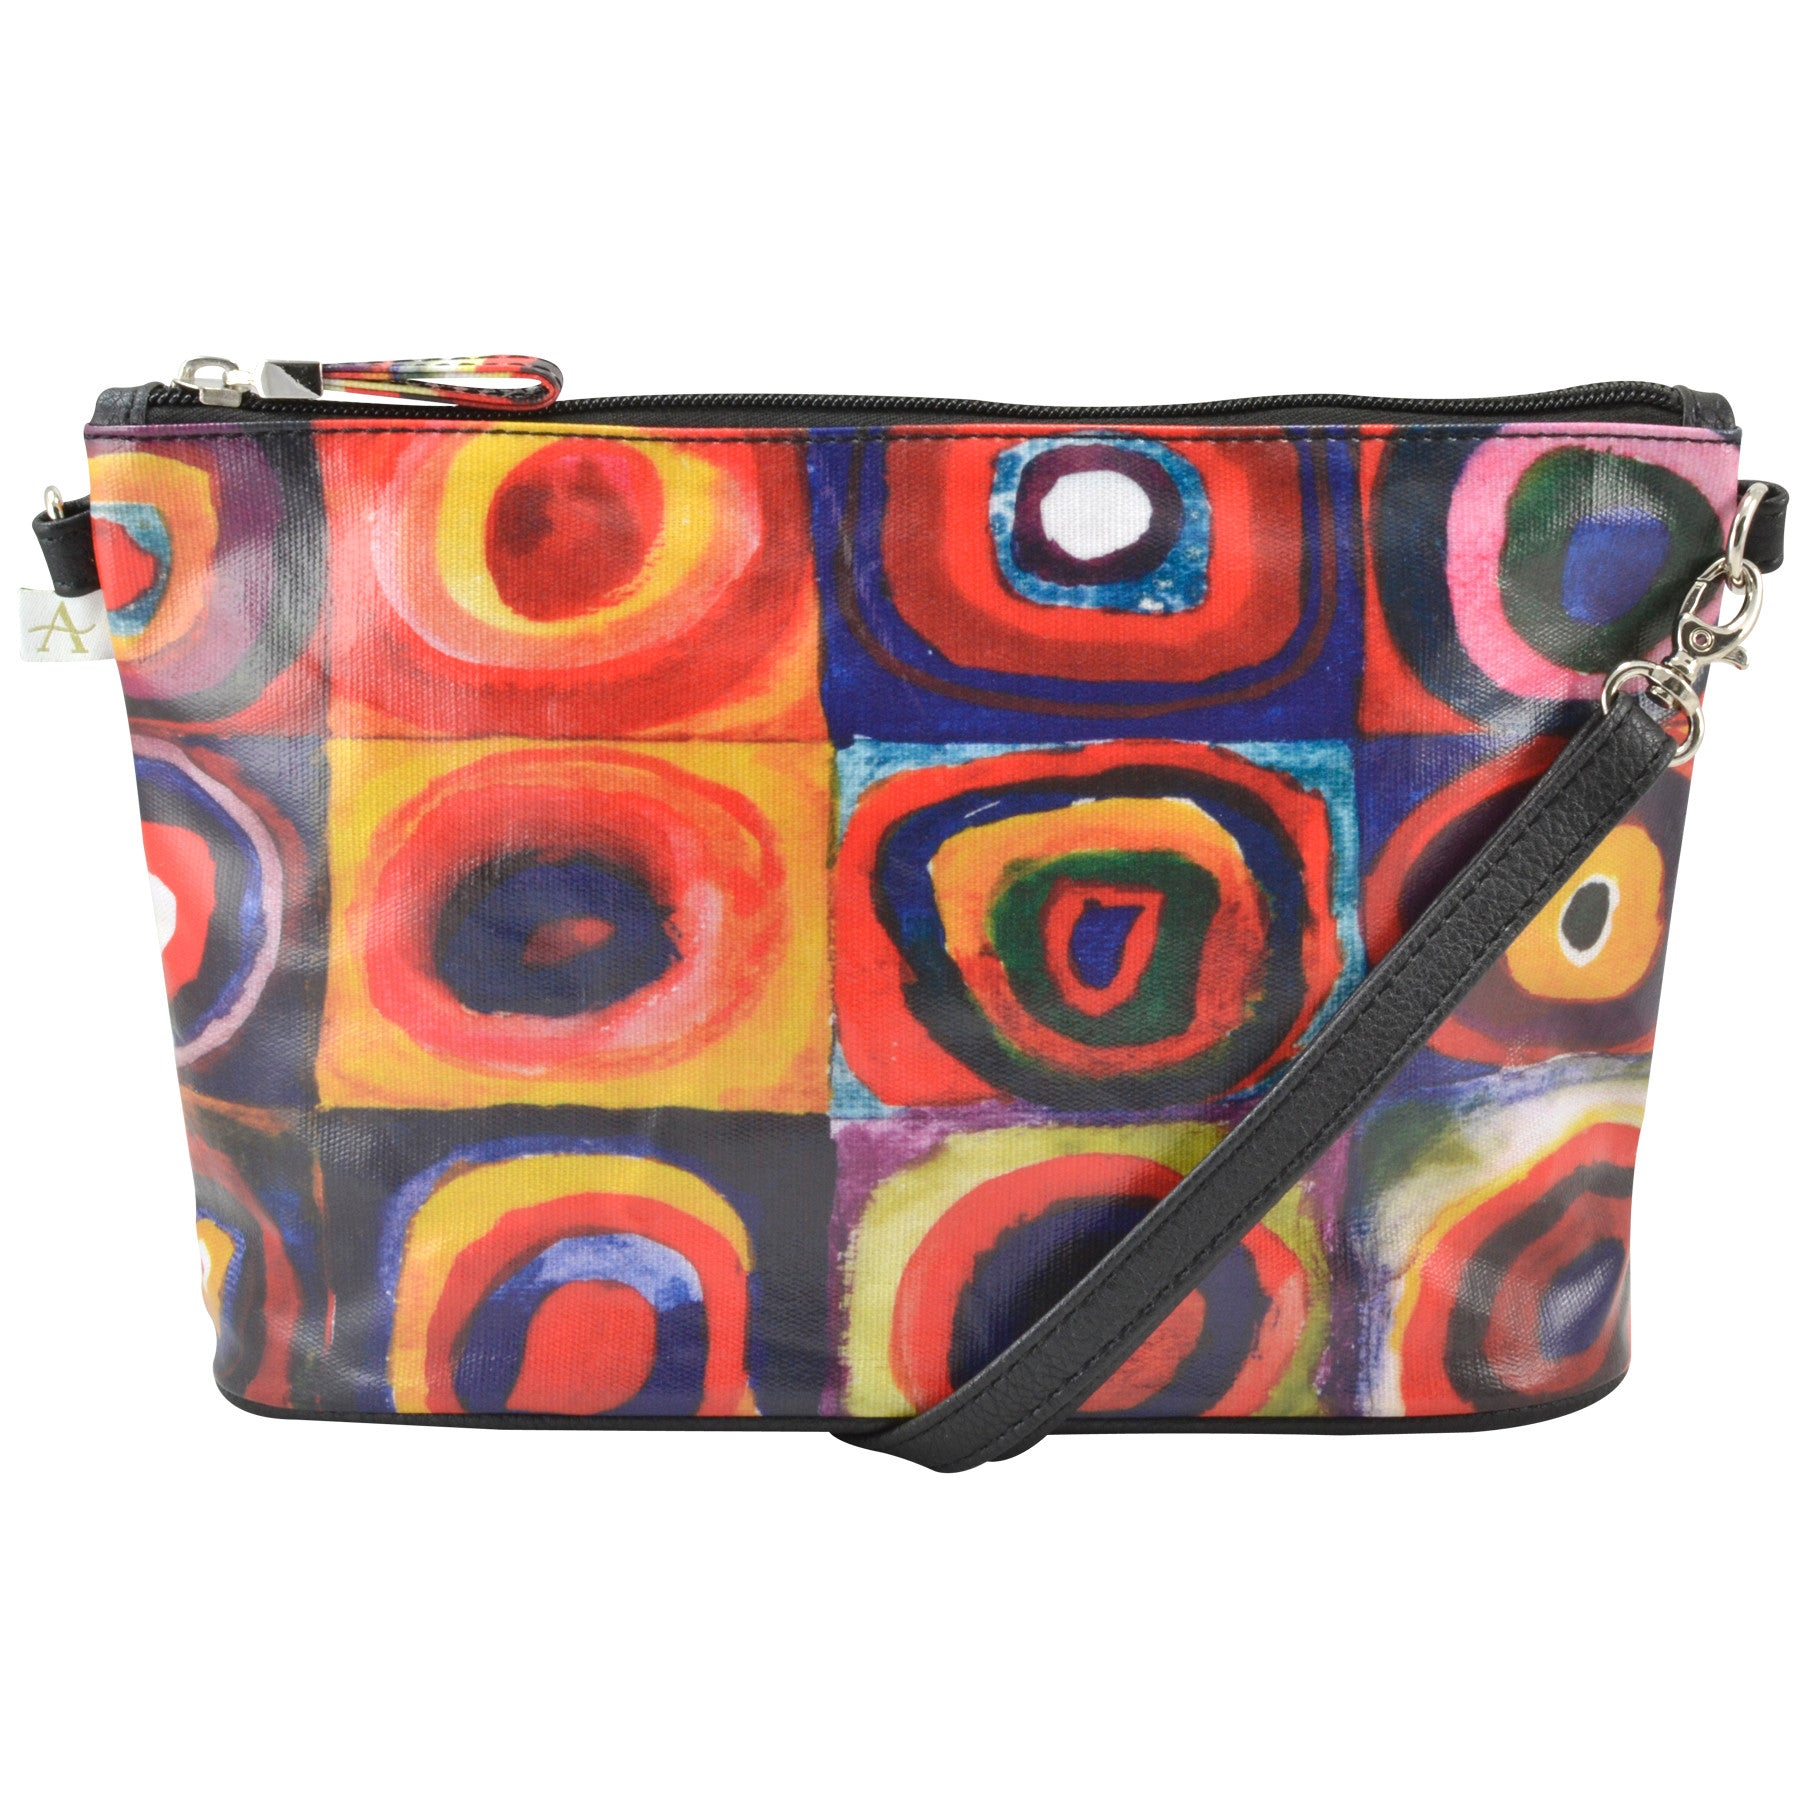 Alicia Klein small crossbody bag, Kandinsky